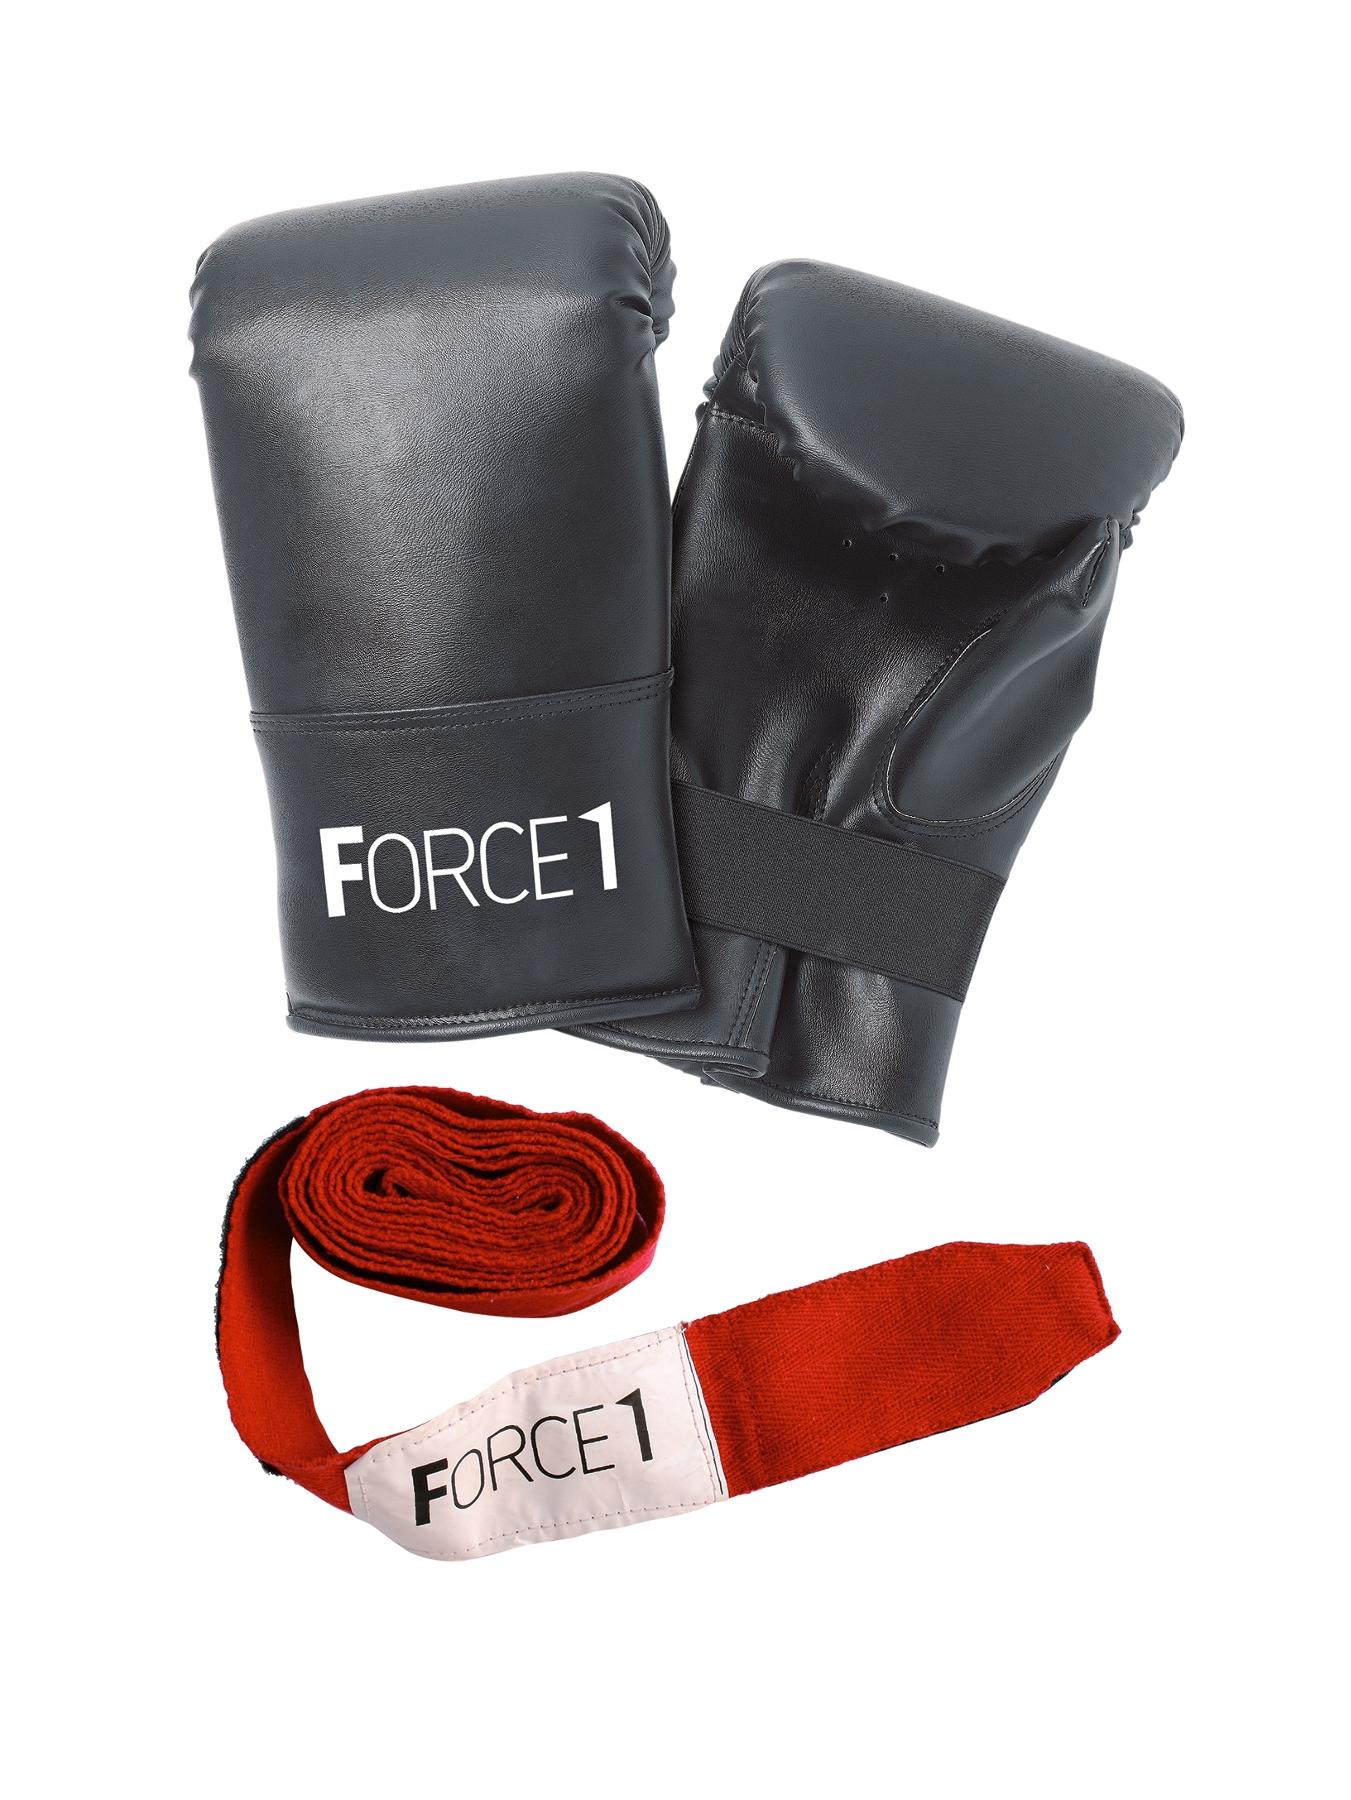 FORCE 1 Boxing Mitts and Straps